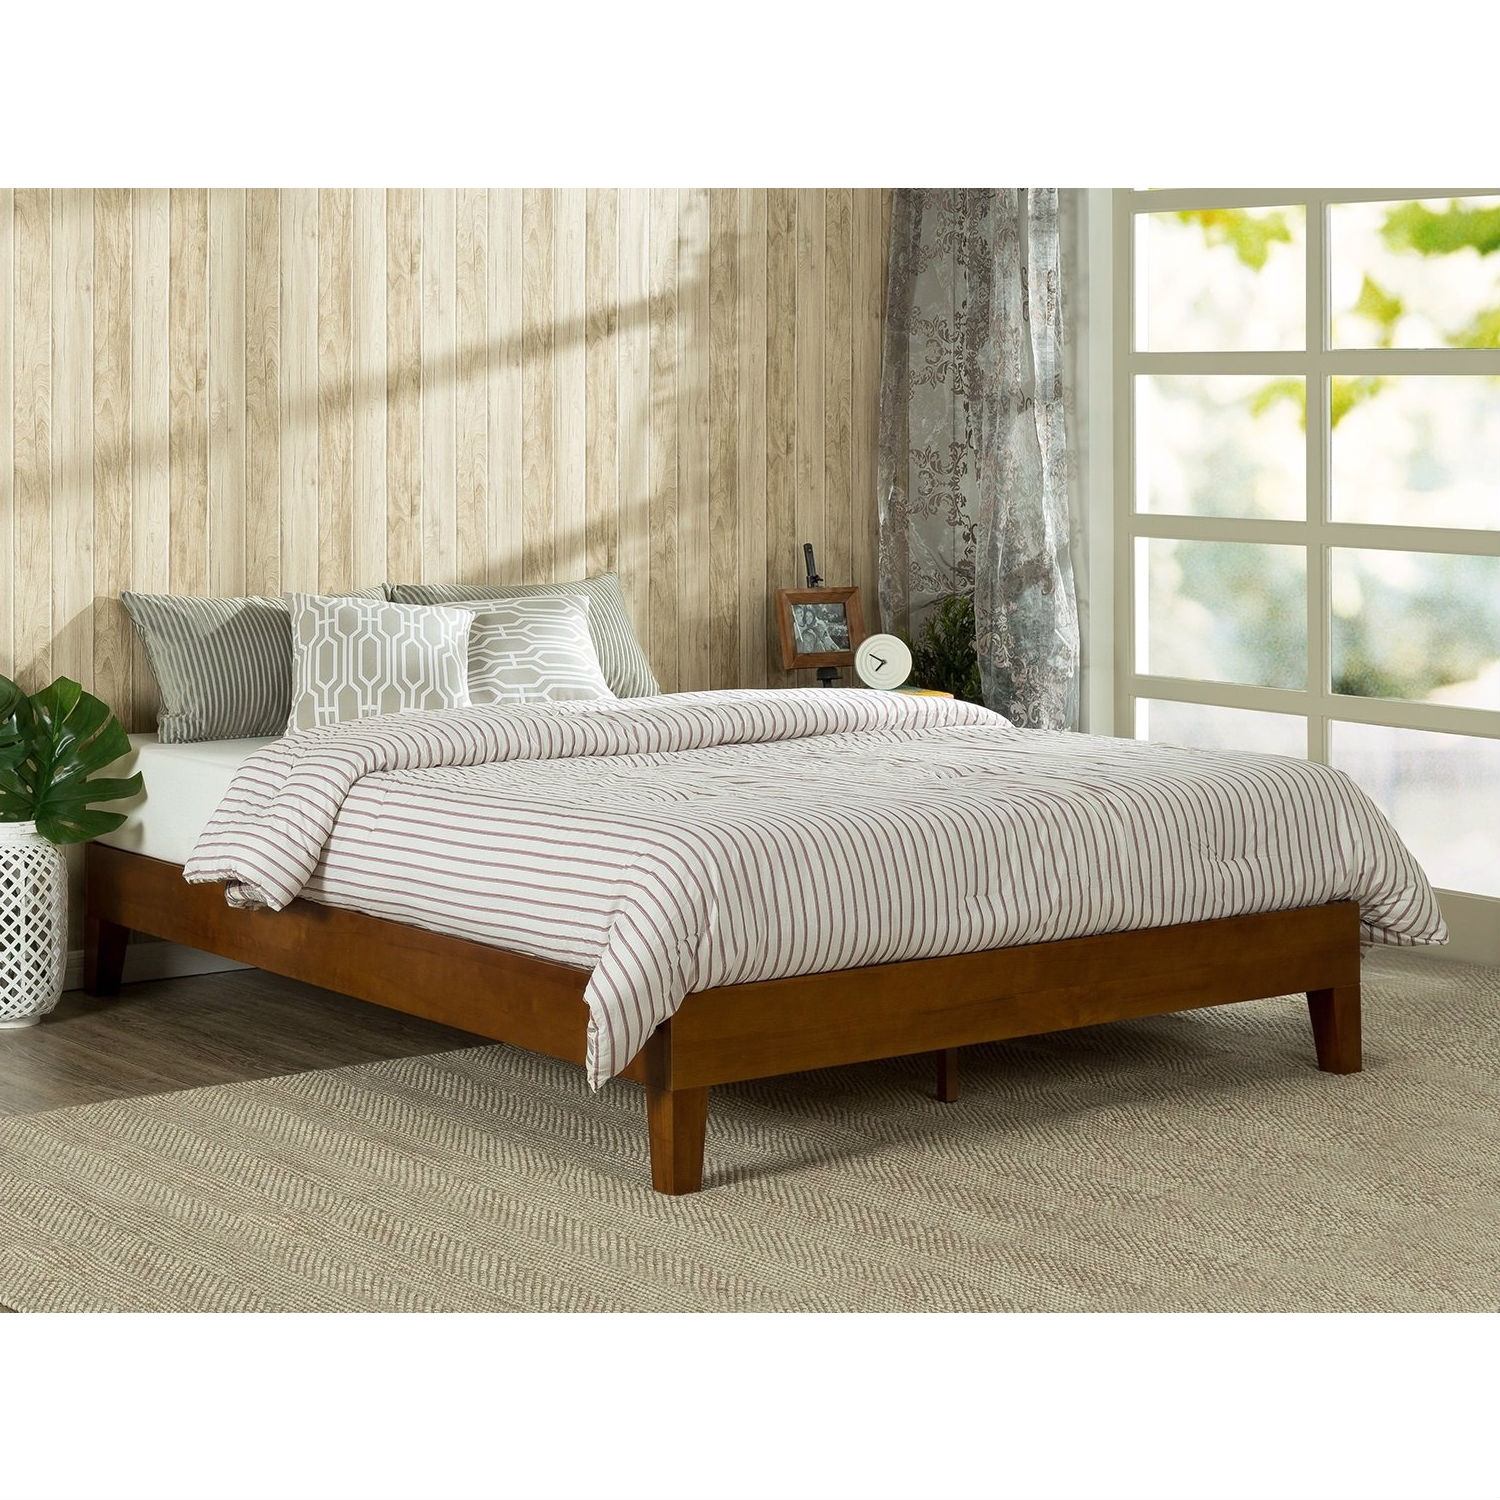 Queen size Solid Wood Low Profile Platform Bed Frame in Cherry ...